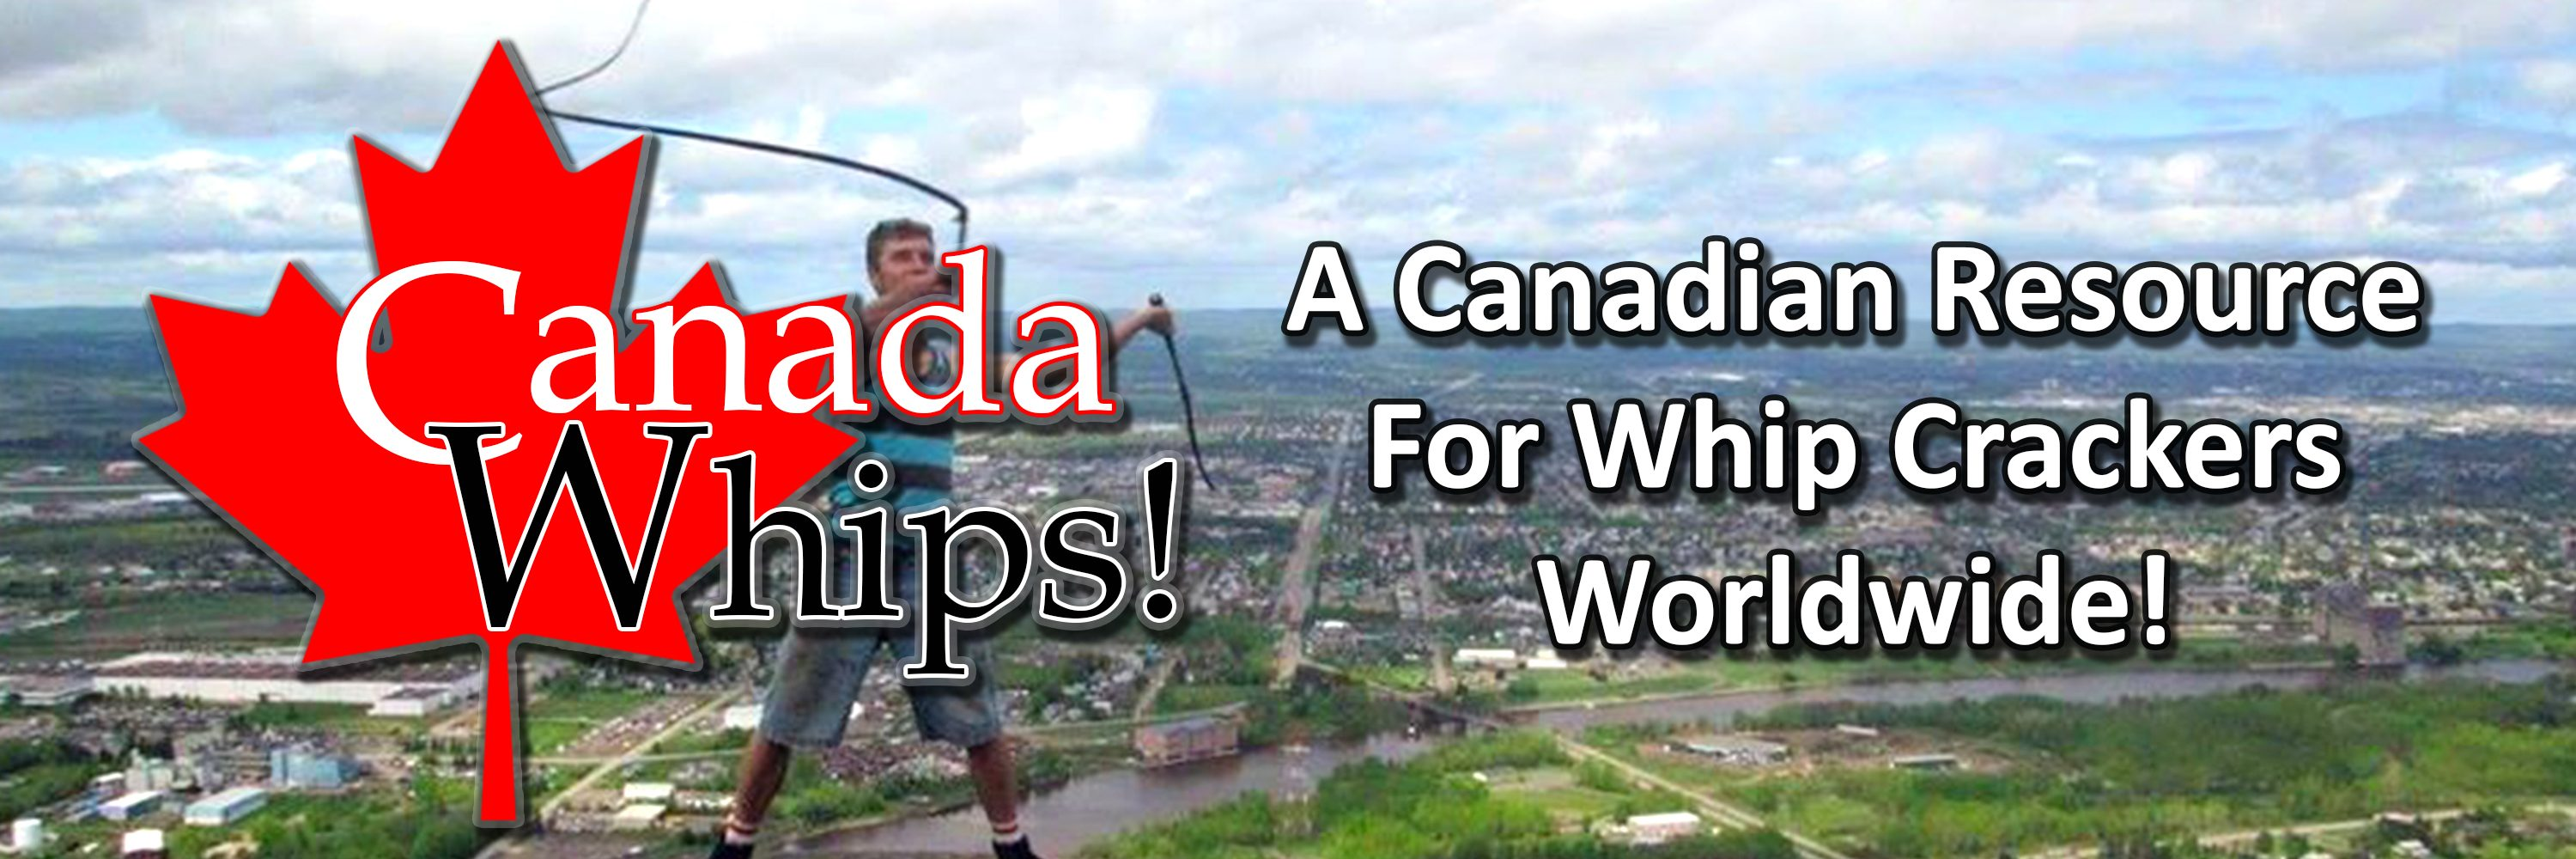 Canada Whips